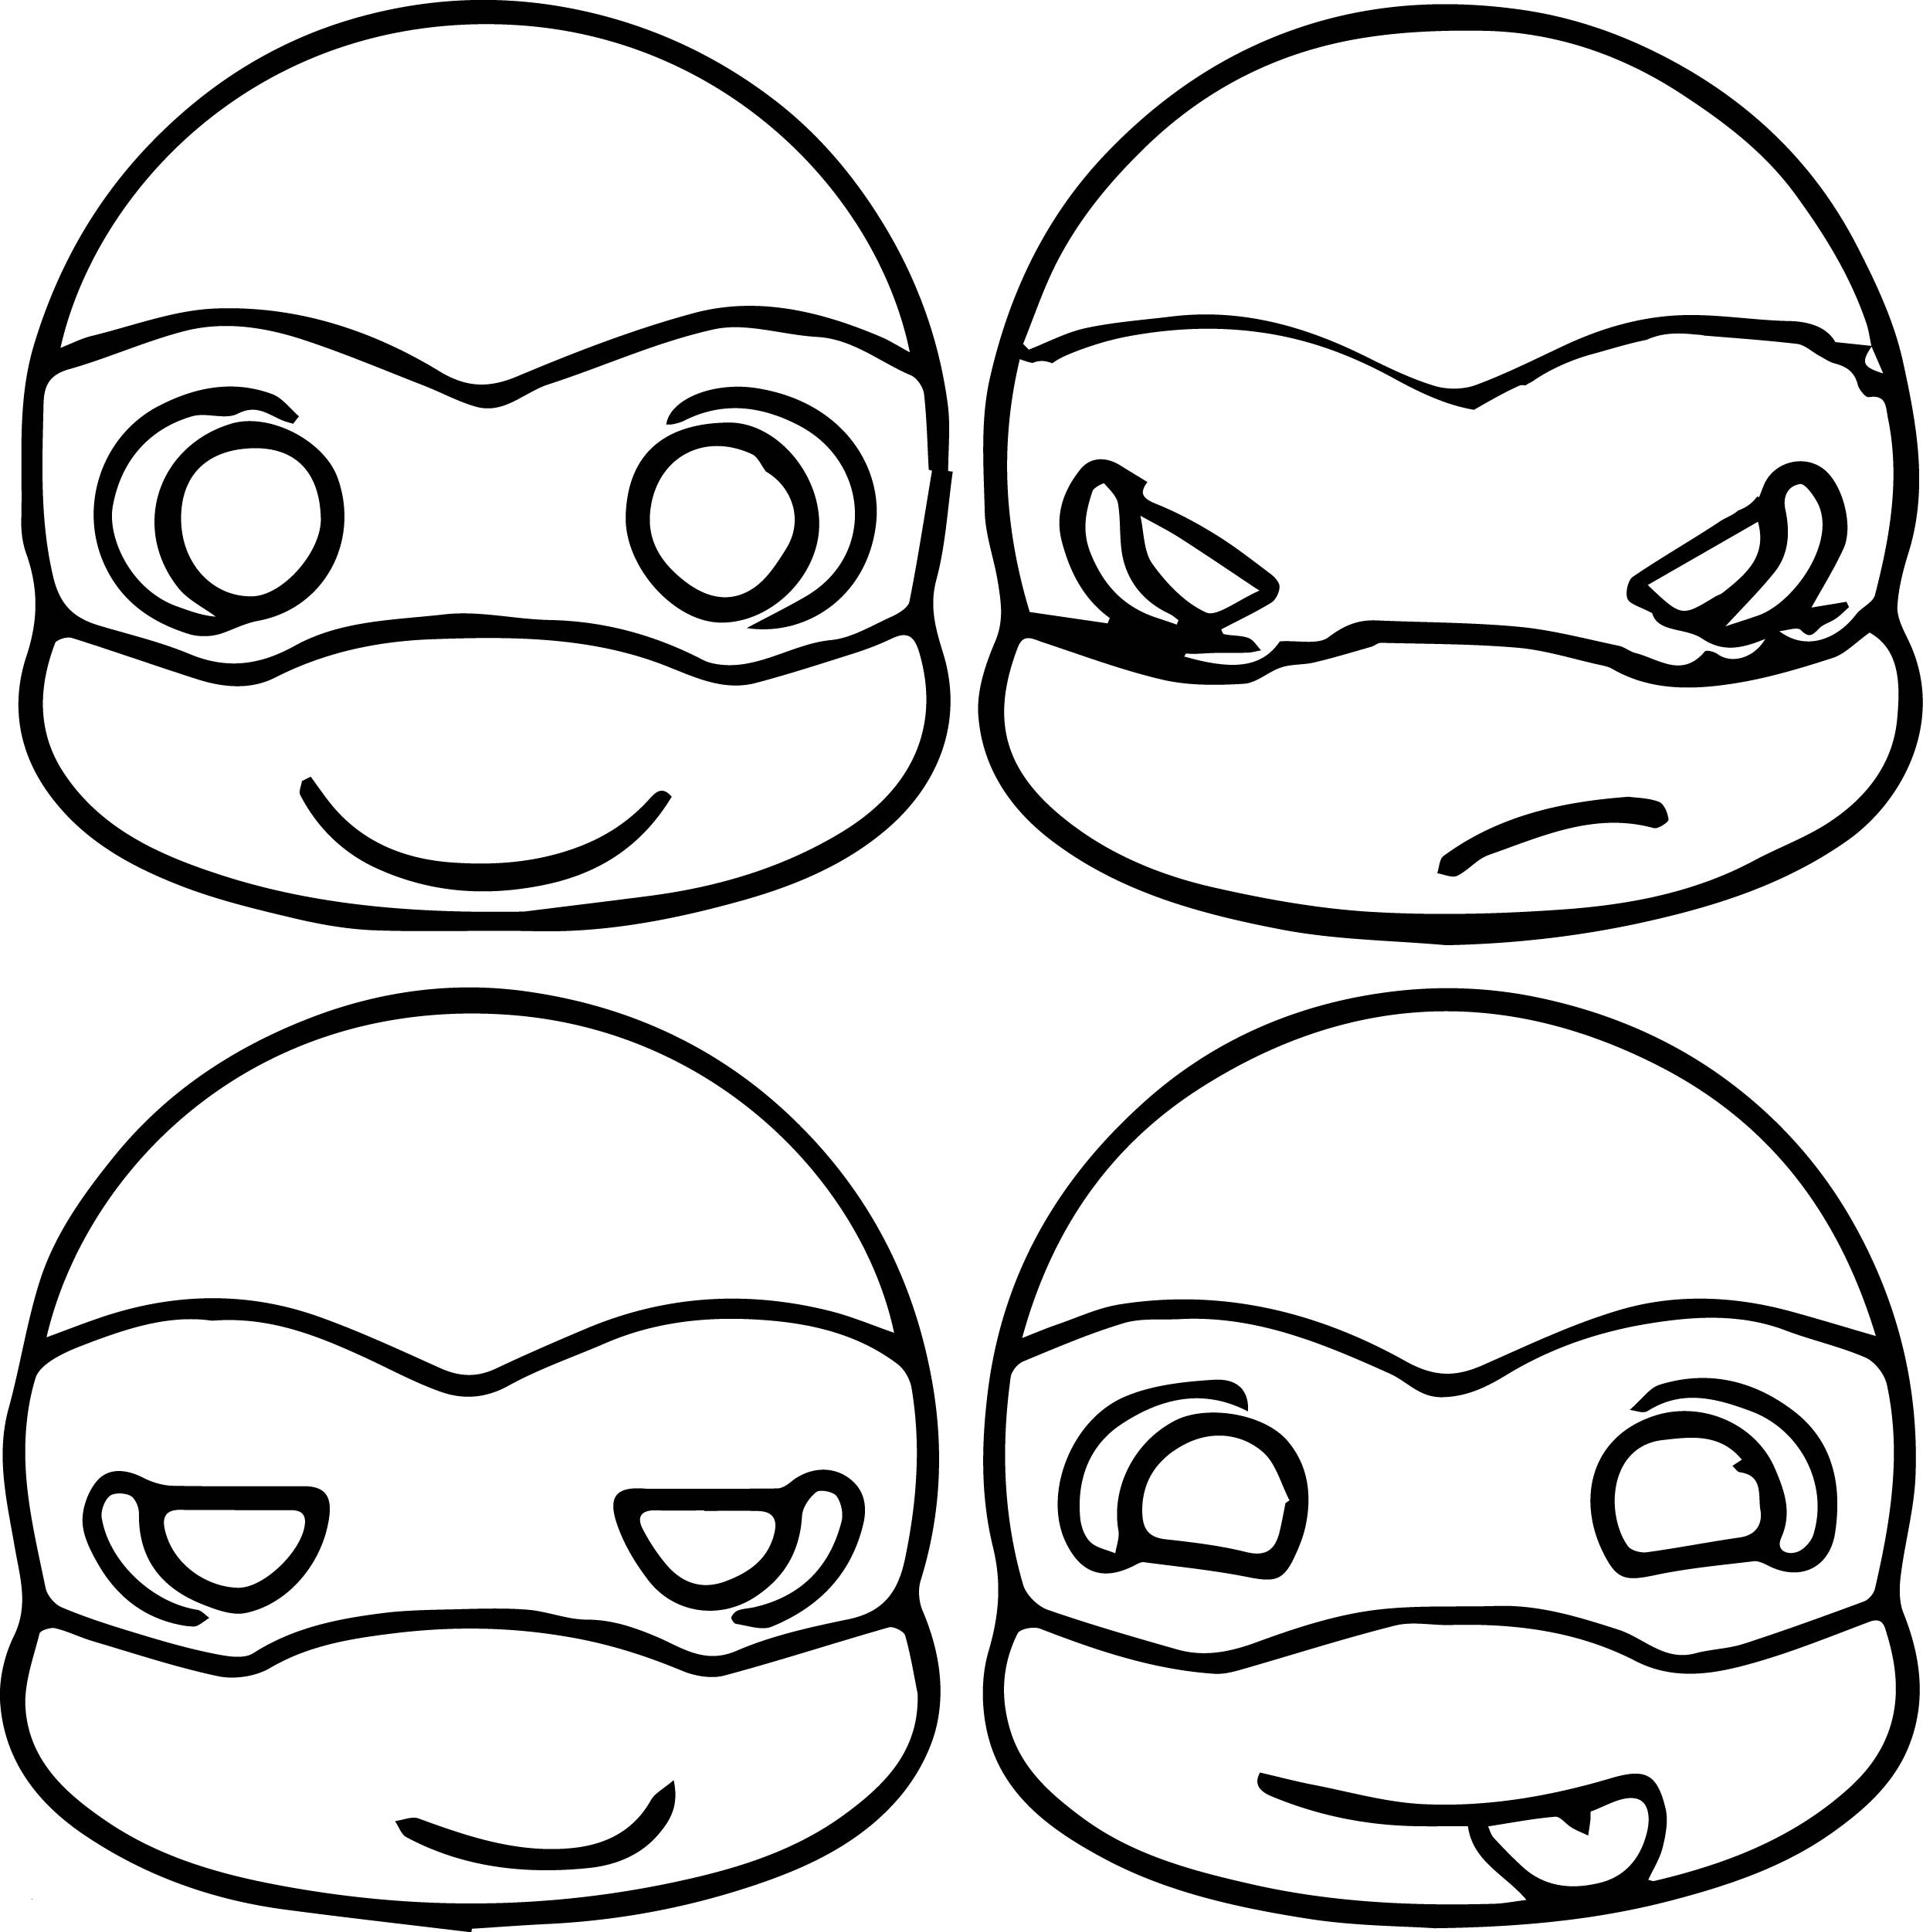 ninja turtle coloring pages teenage mutant ninja turtles coloring pages best turtle ninja pages coloring